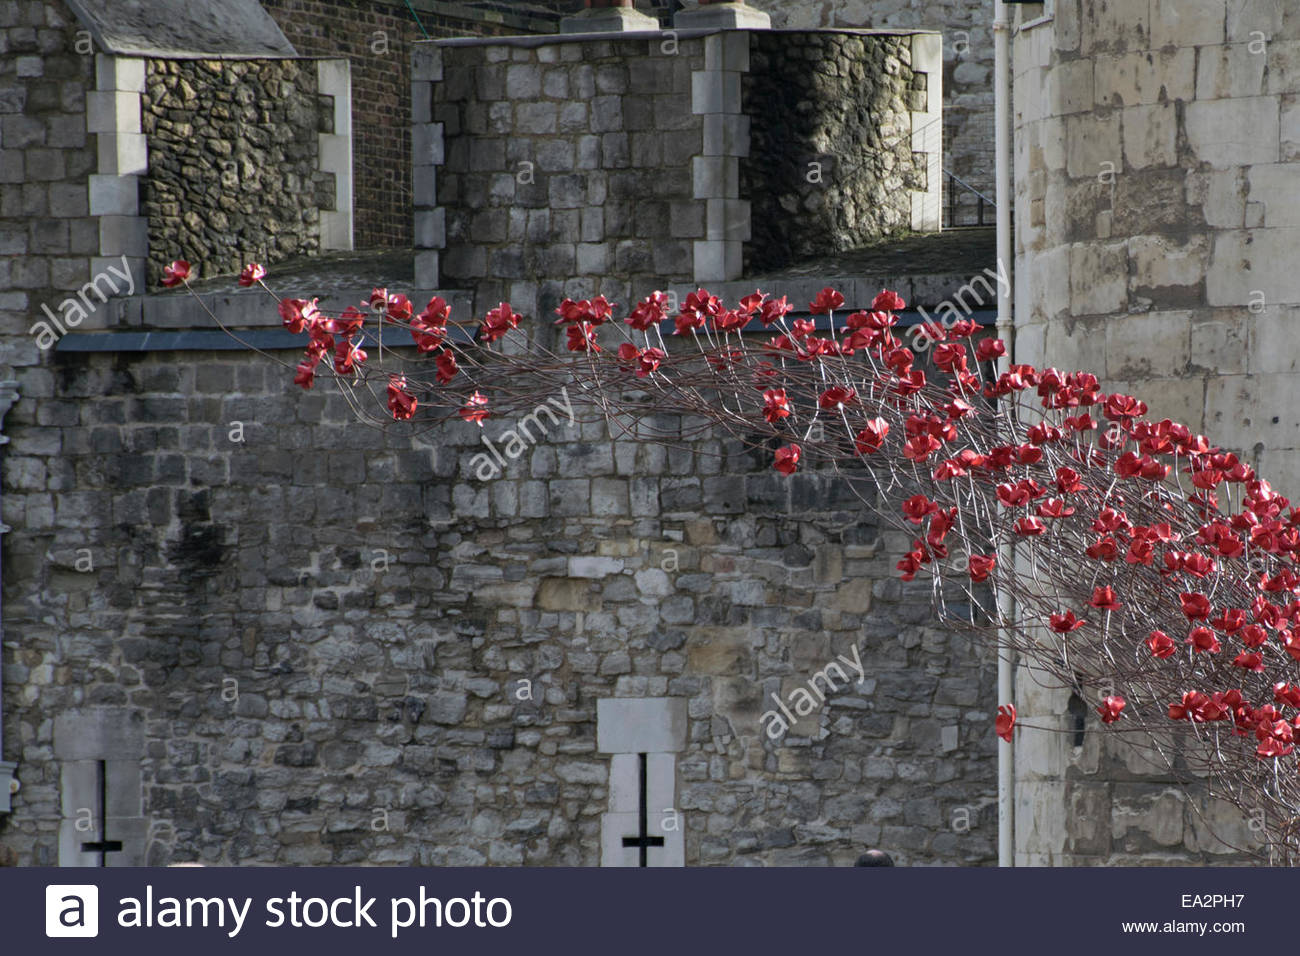 Wave section of the Blood Swept Lands and Seas of Red art installation at the Tower of London - Stock Image